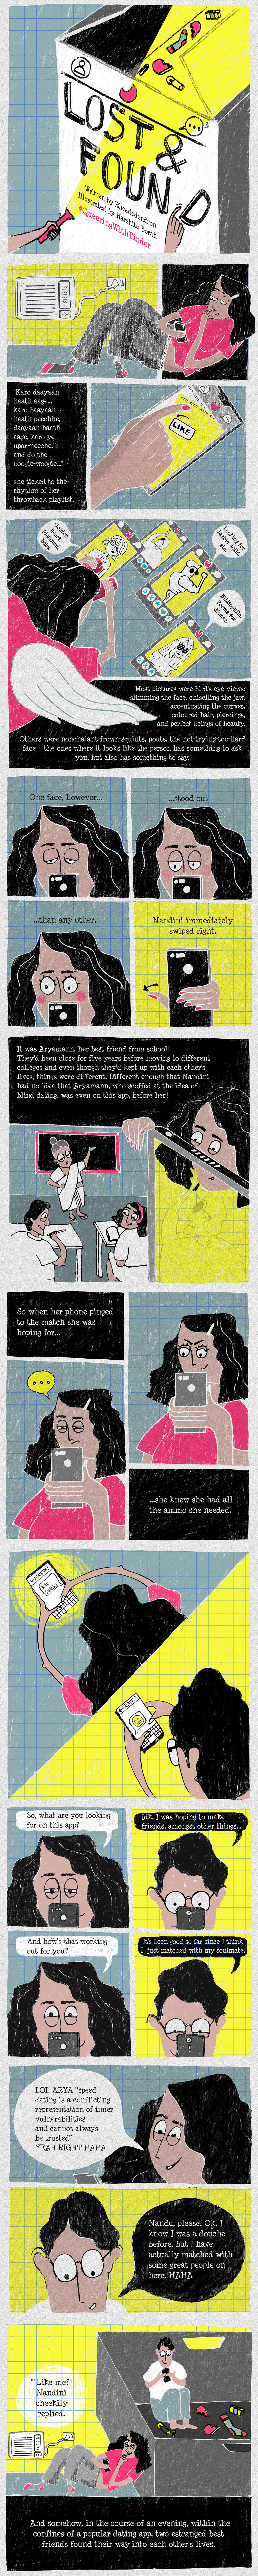 Graphic Story: Lost And Found